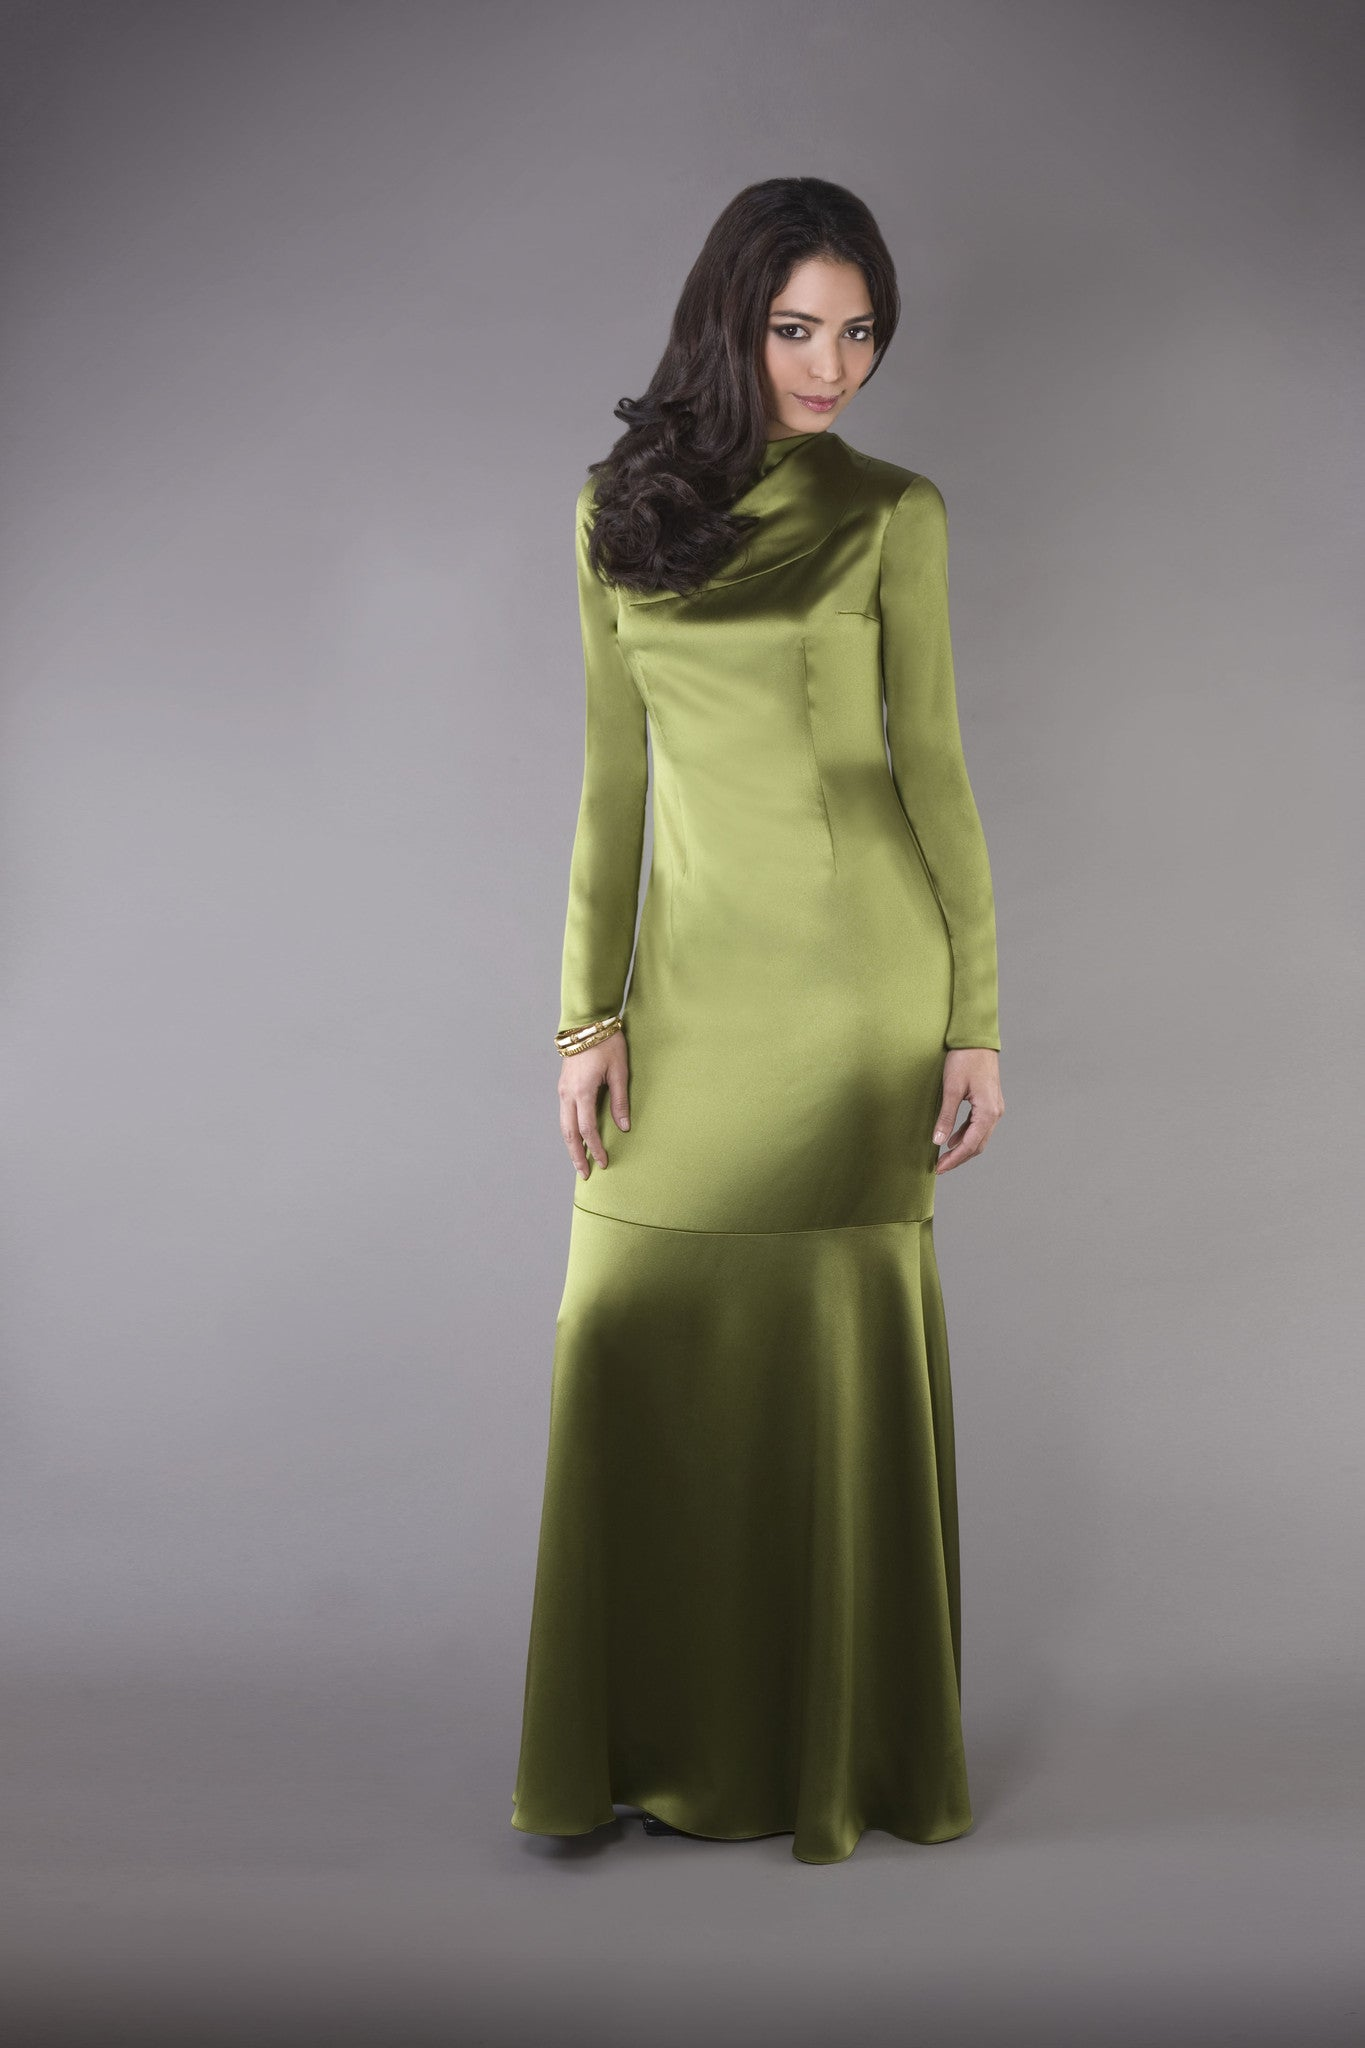 Elegant, long-sleeved modest hijab friendly olive green satin column gown with pleated draped neckline detailing.